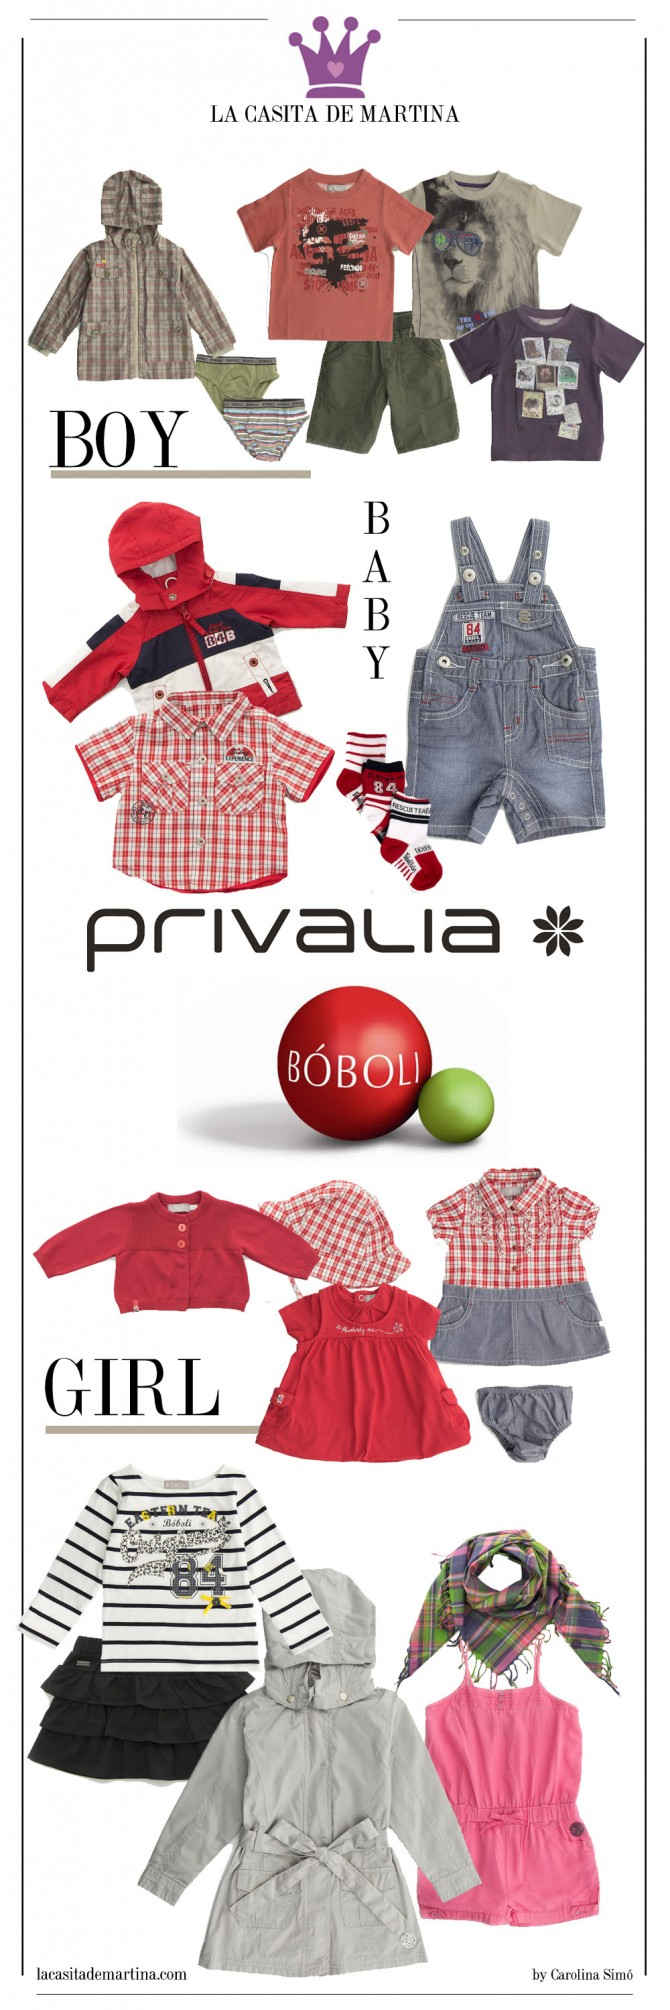 Privalia, Bóboli, Moda Infantil, La casita de Martina, Blog Moda Infantil,  Fashion Kids